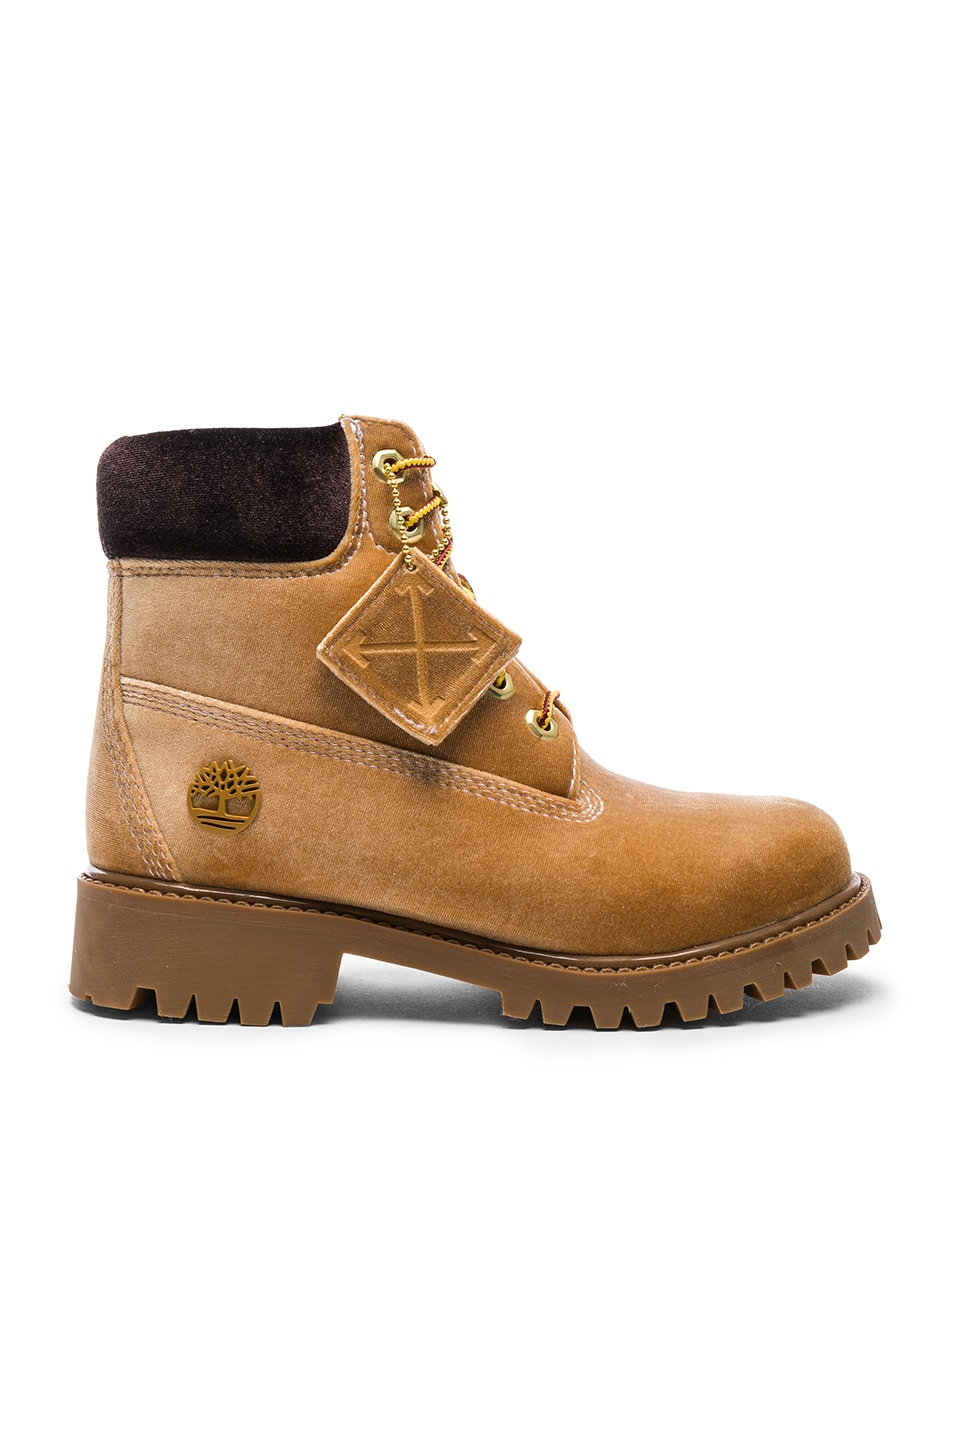 Image 1 of OFF-WHITE x Timberland Velvet Hiking Boots in Camel